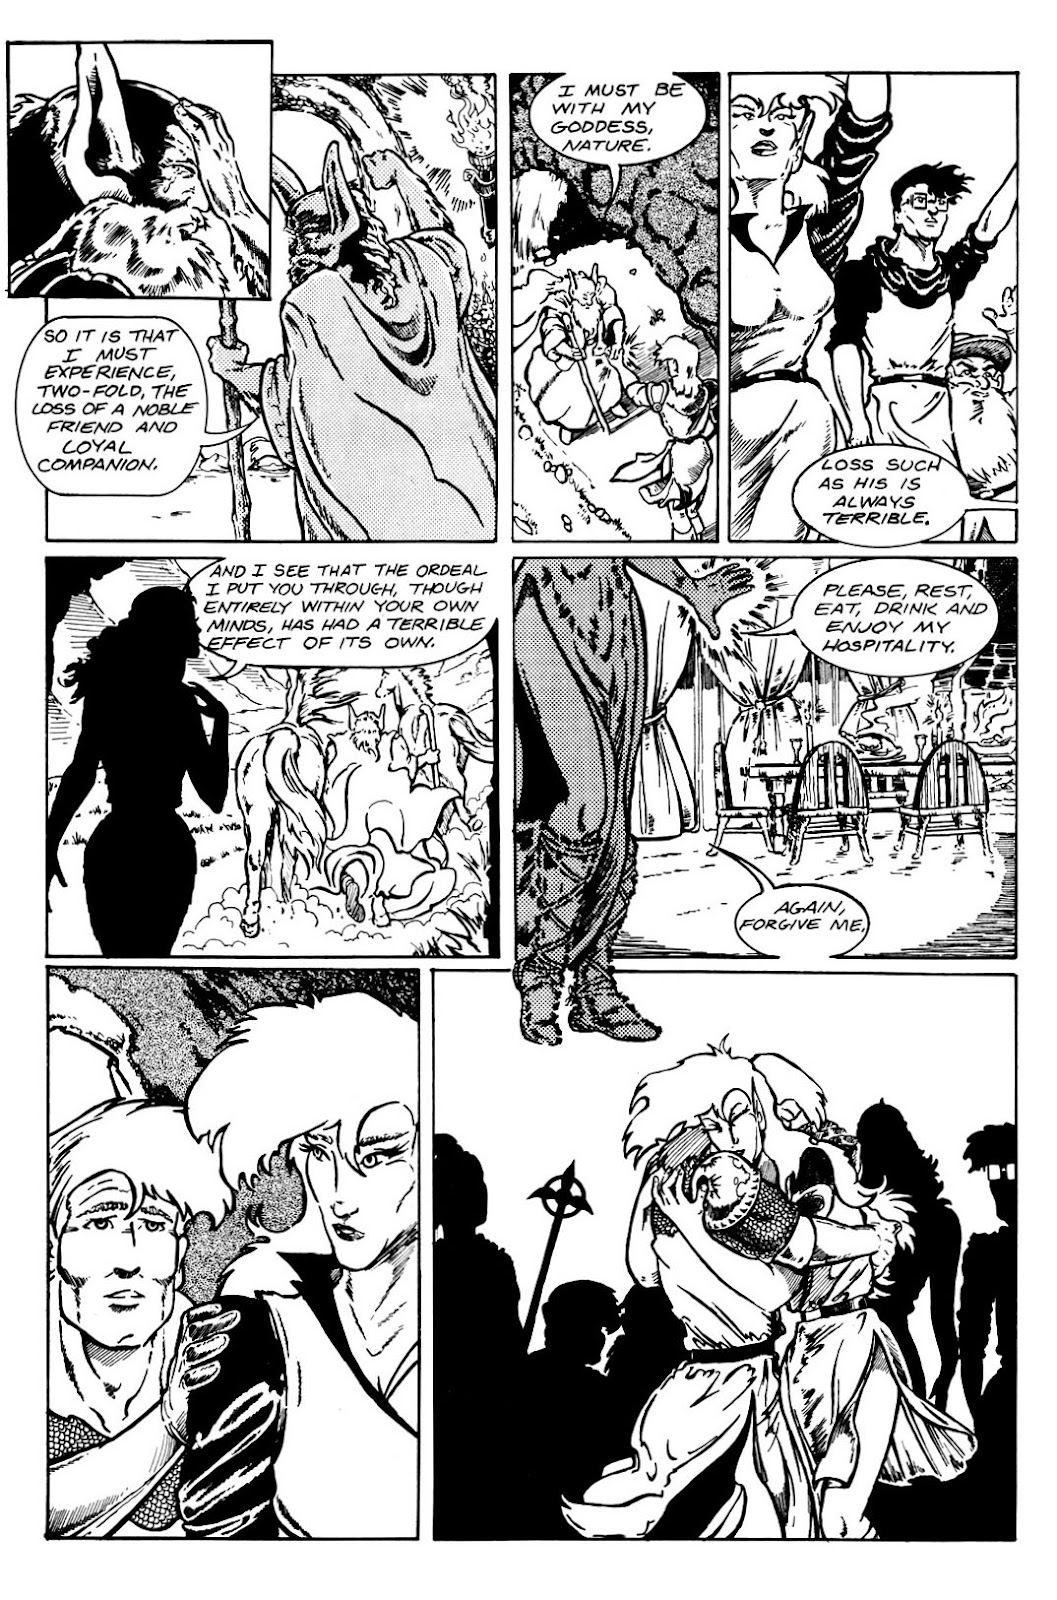 The Realm (1986) issue 17 - Page 11